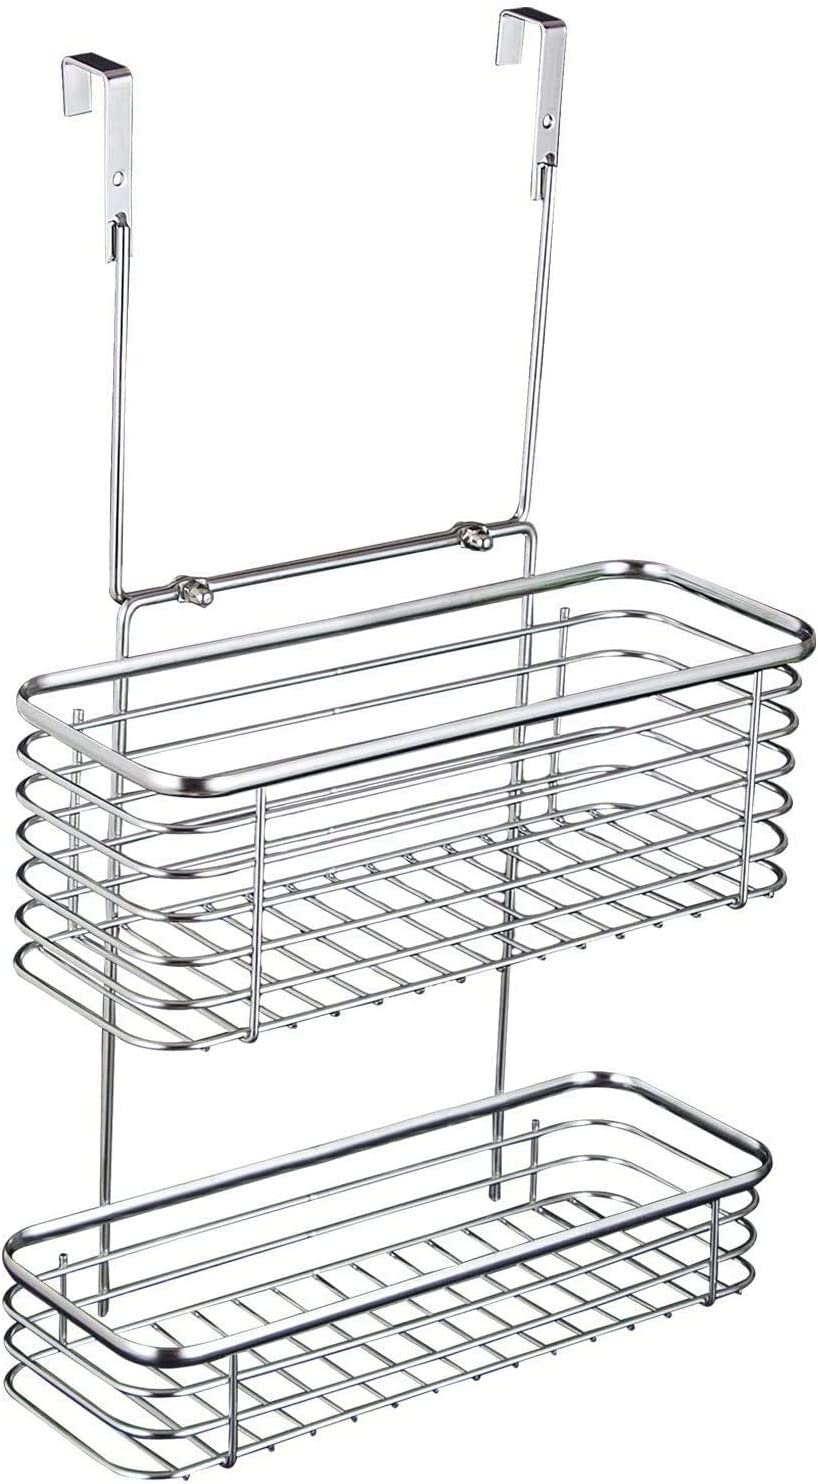 LCUY Bathroom Selling Shelf Shower 4 years warranty for Hanging 2 Stainles Pieces